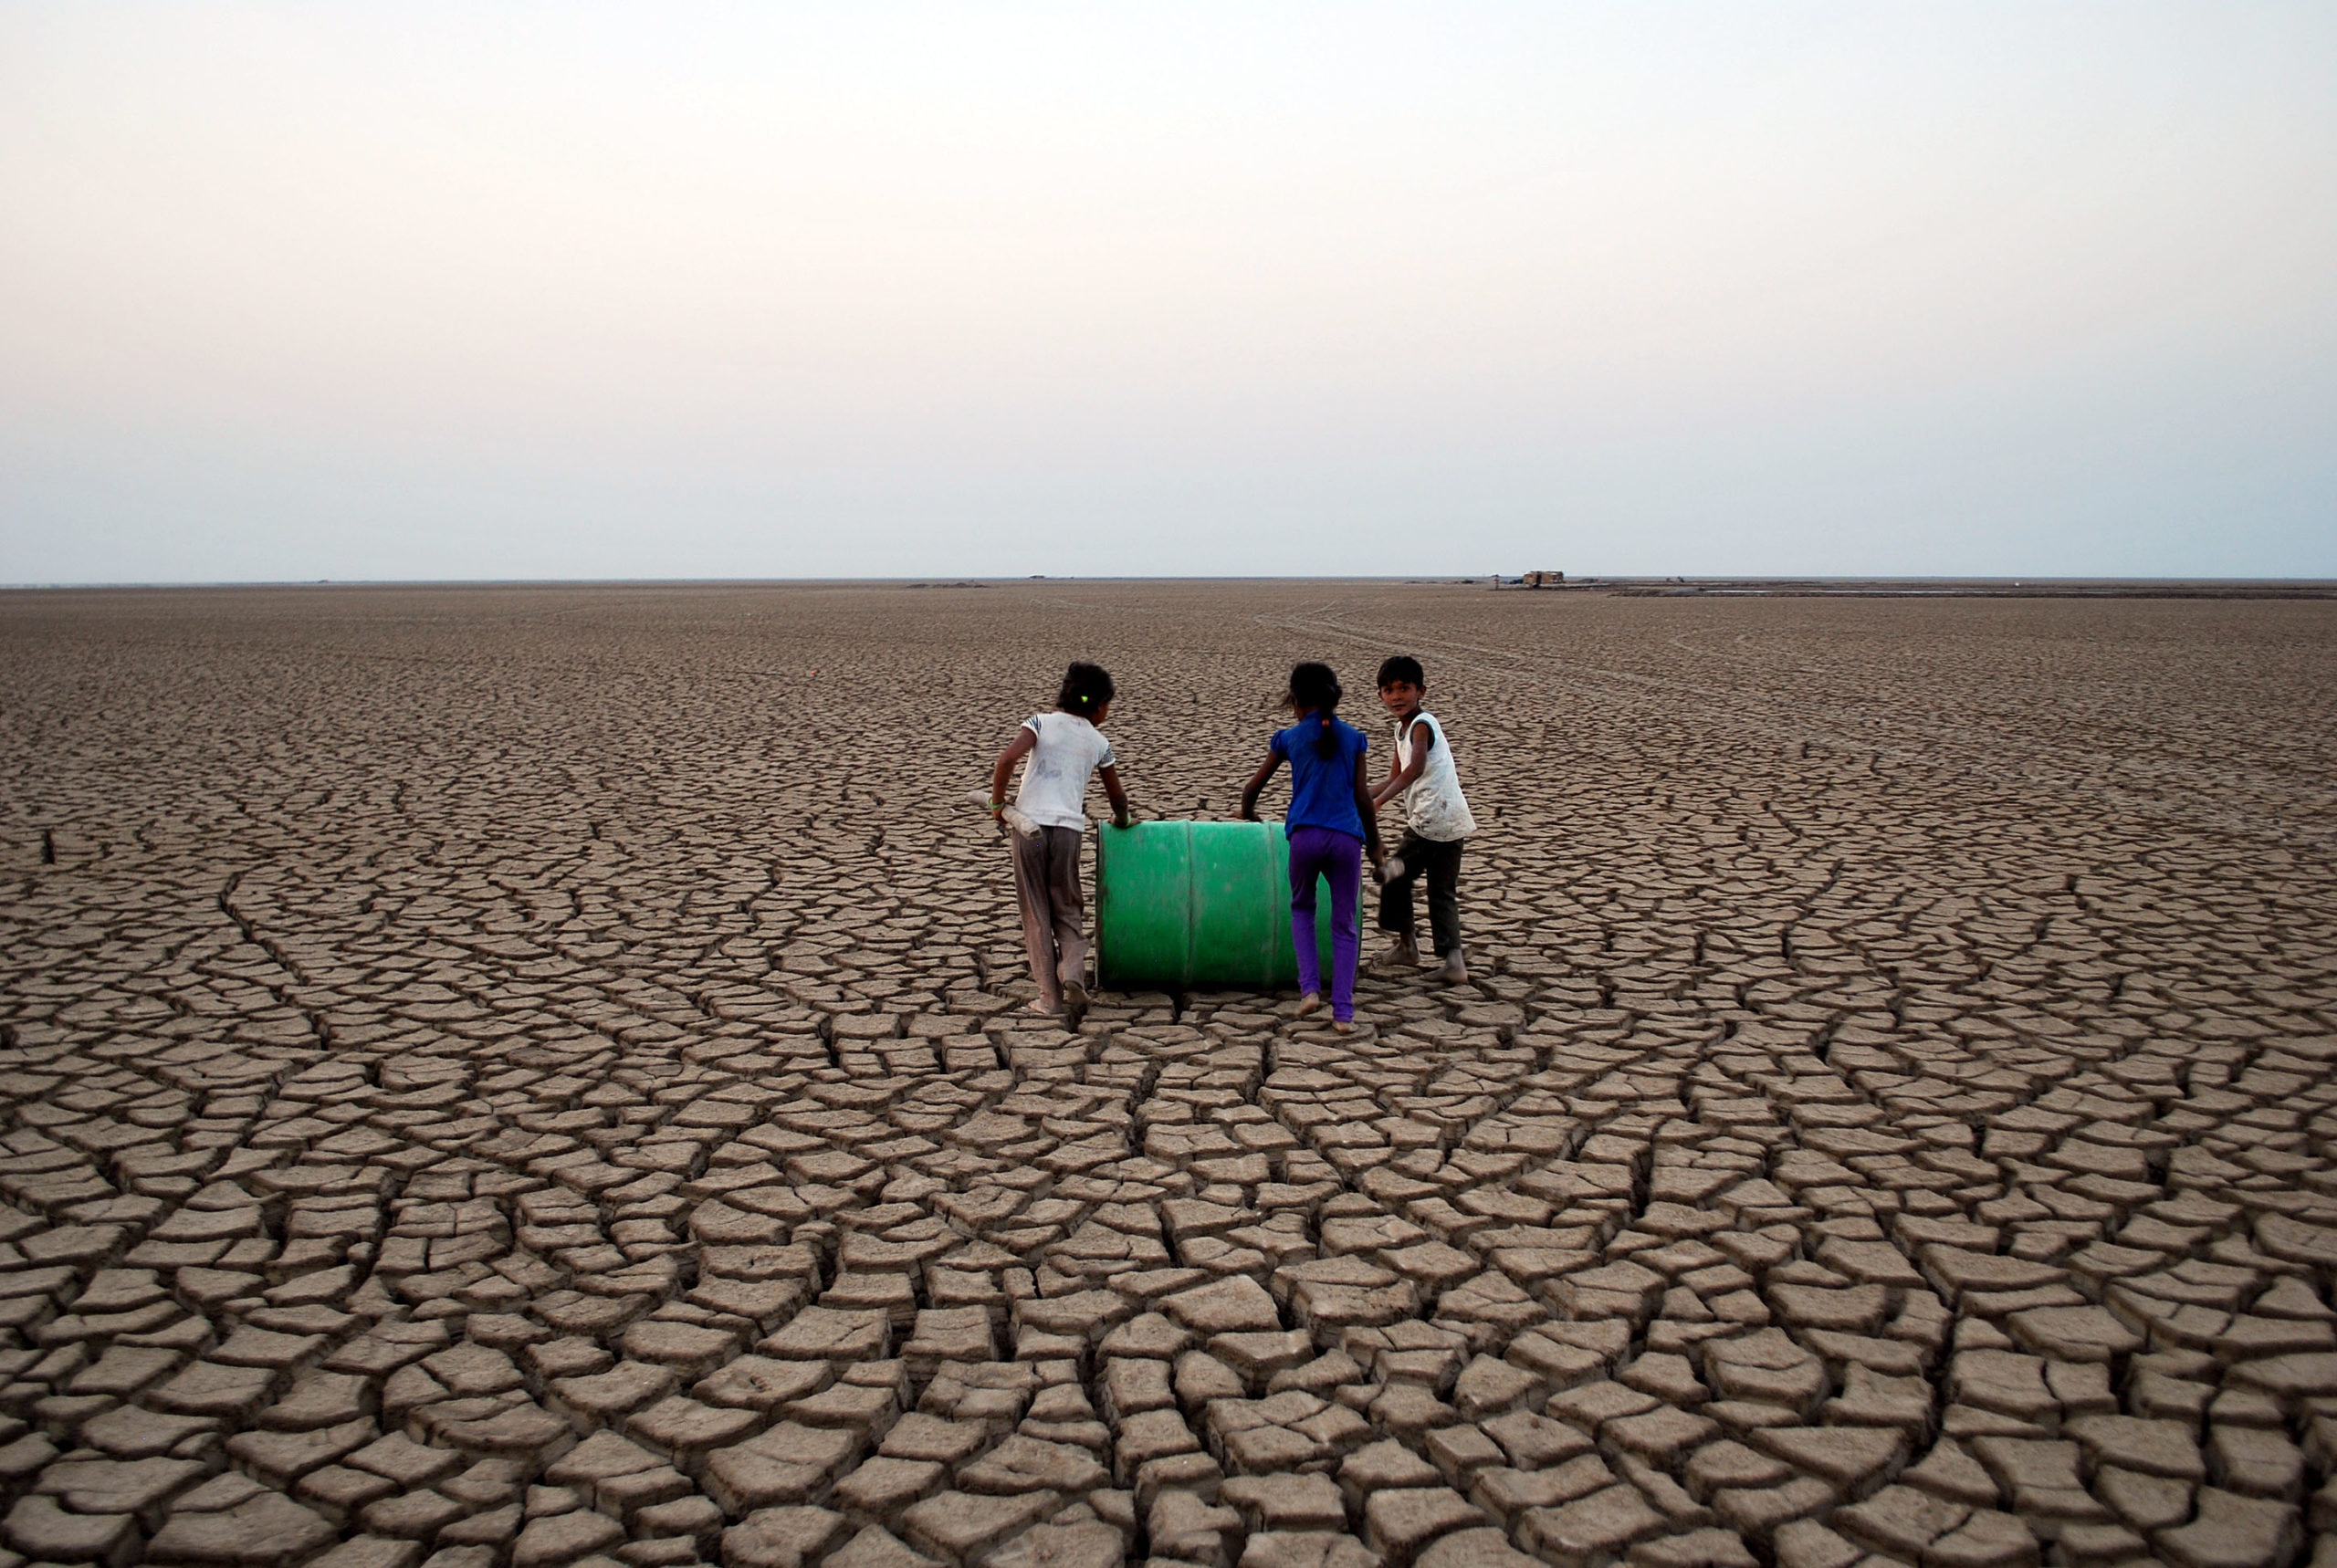 The children of the Agariya community playing with a barrel of oil in the cracked topography of the Little Rann. Photo by Dhvanit Pandya/AHRM.